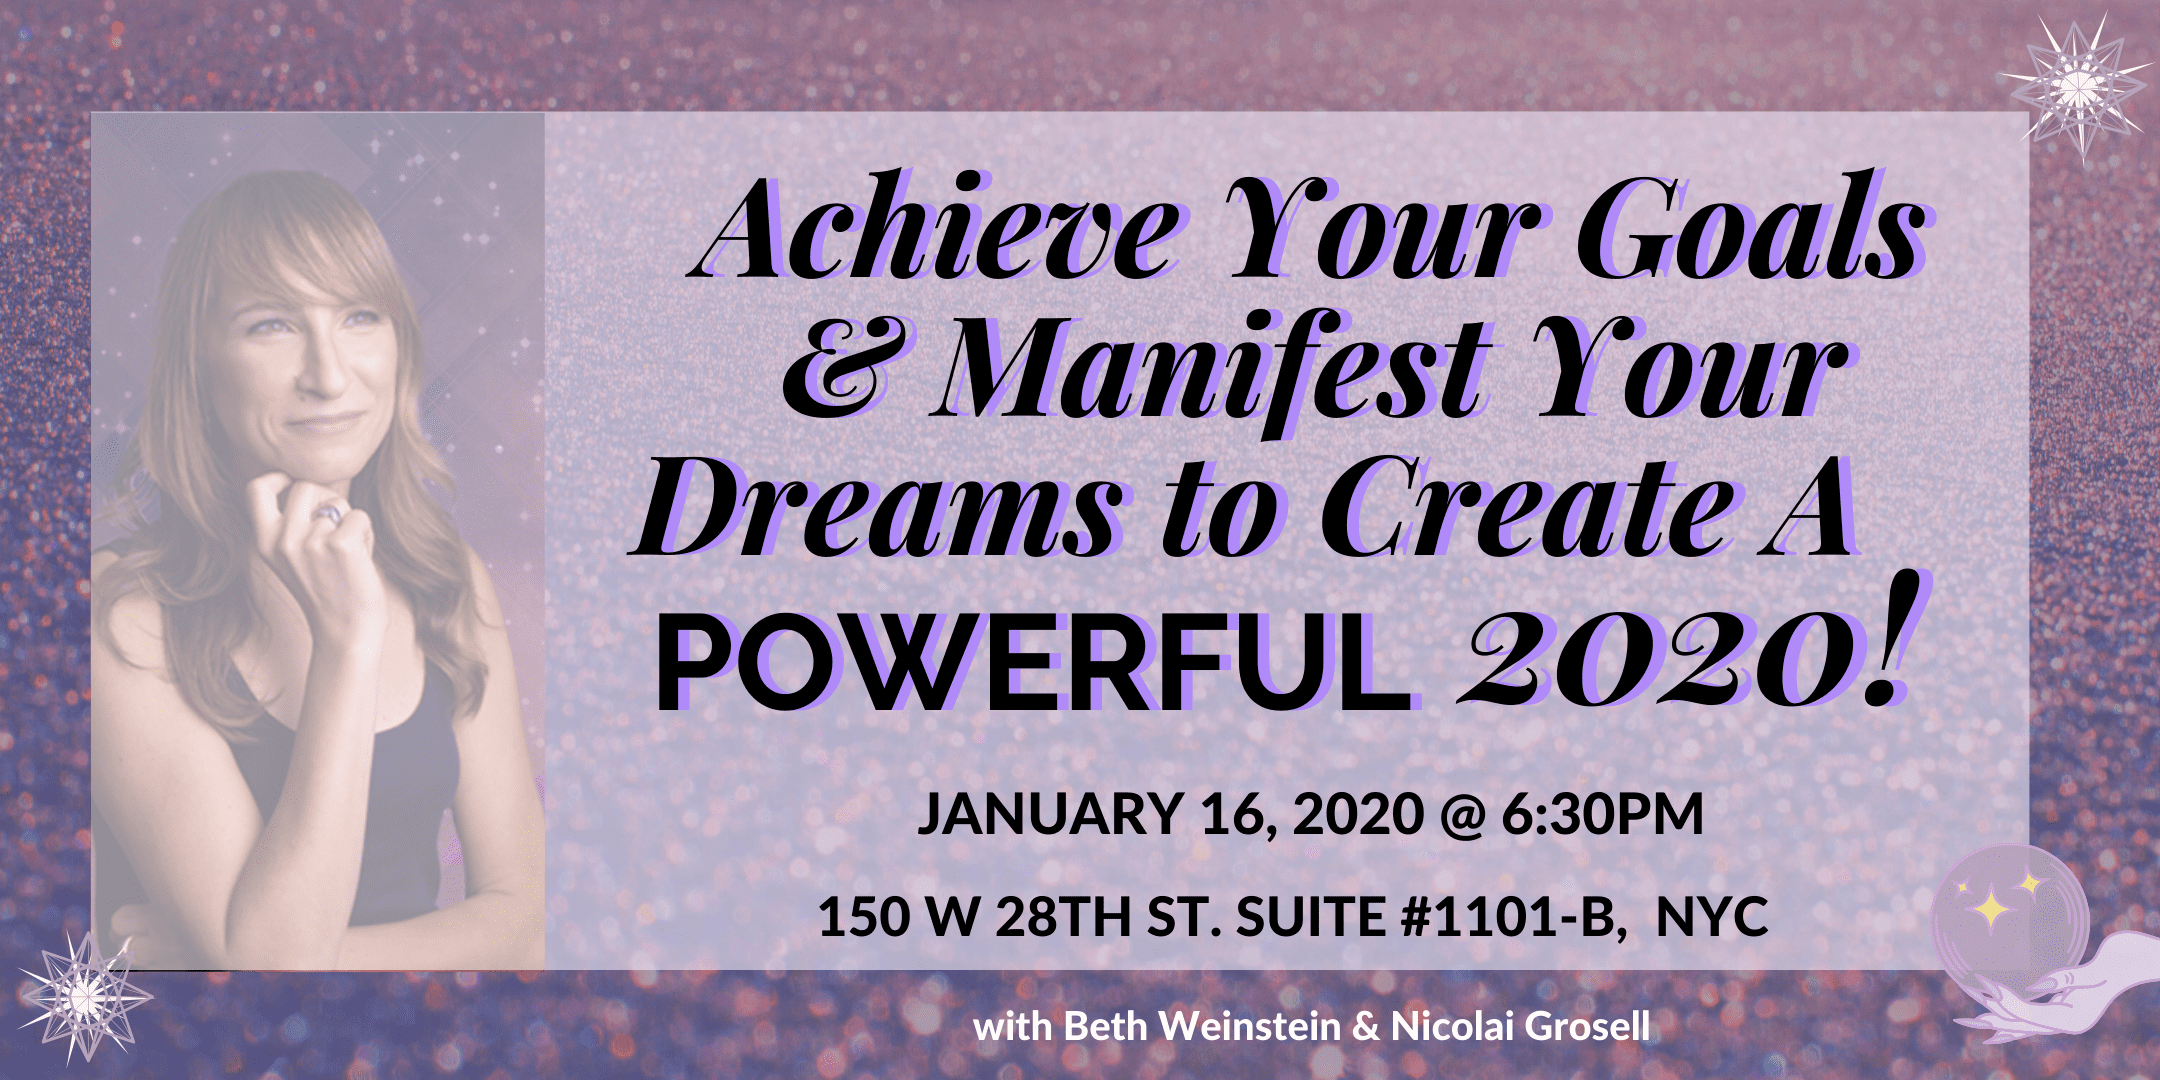 Live Interactive Workshop Using Practical Woo To Achieve Your Goals Manifest Your Dreams Create A Powerful 2020 Beth A Weinstein Business Coach For Spiritual Entrepreneurs